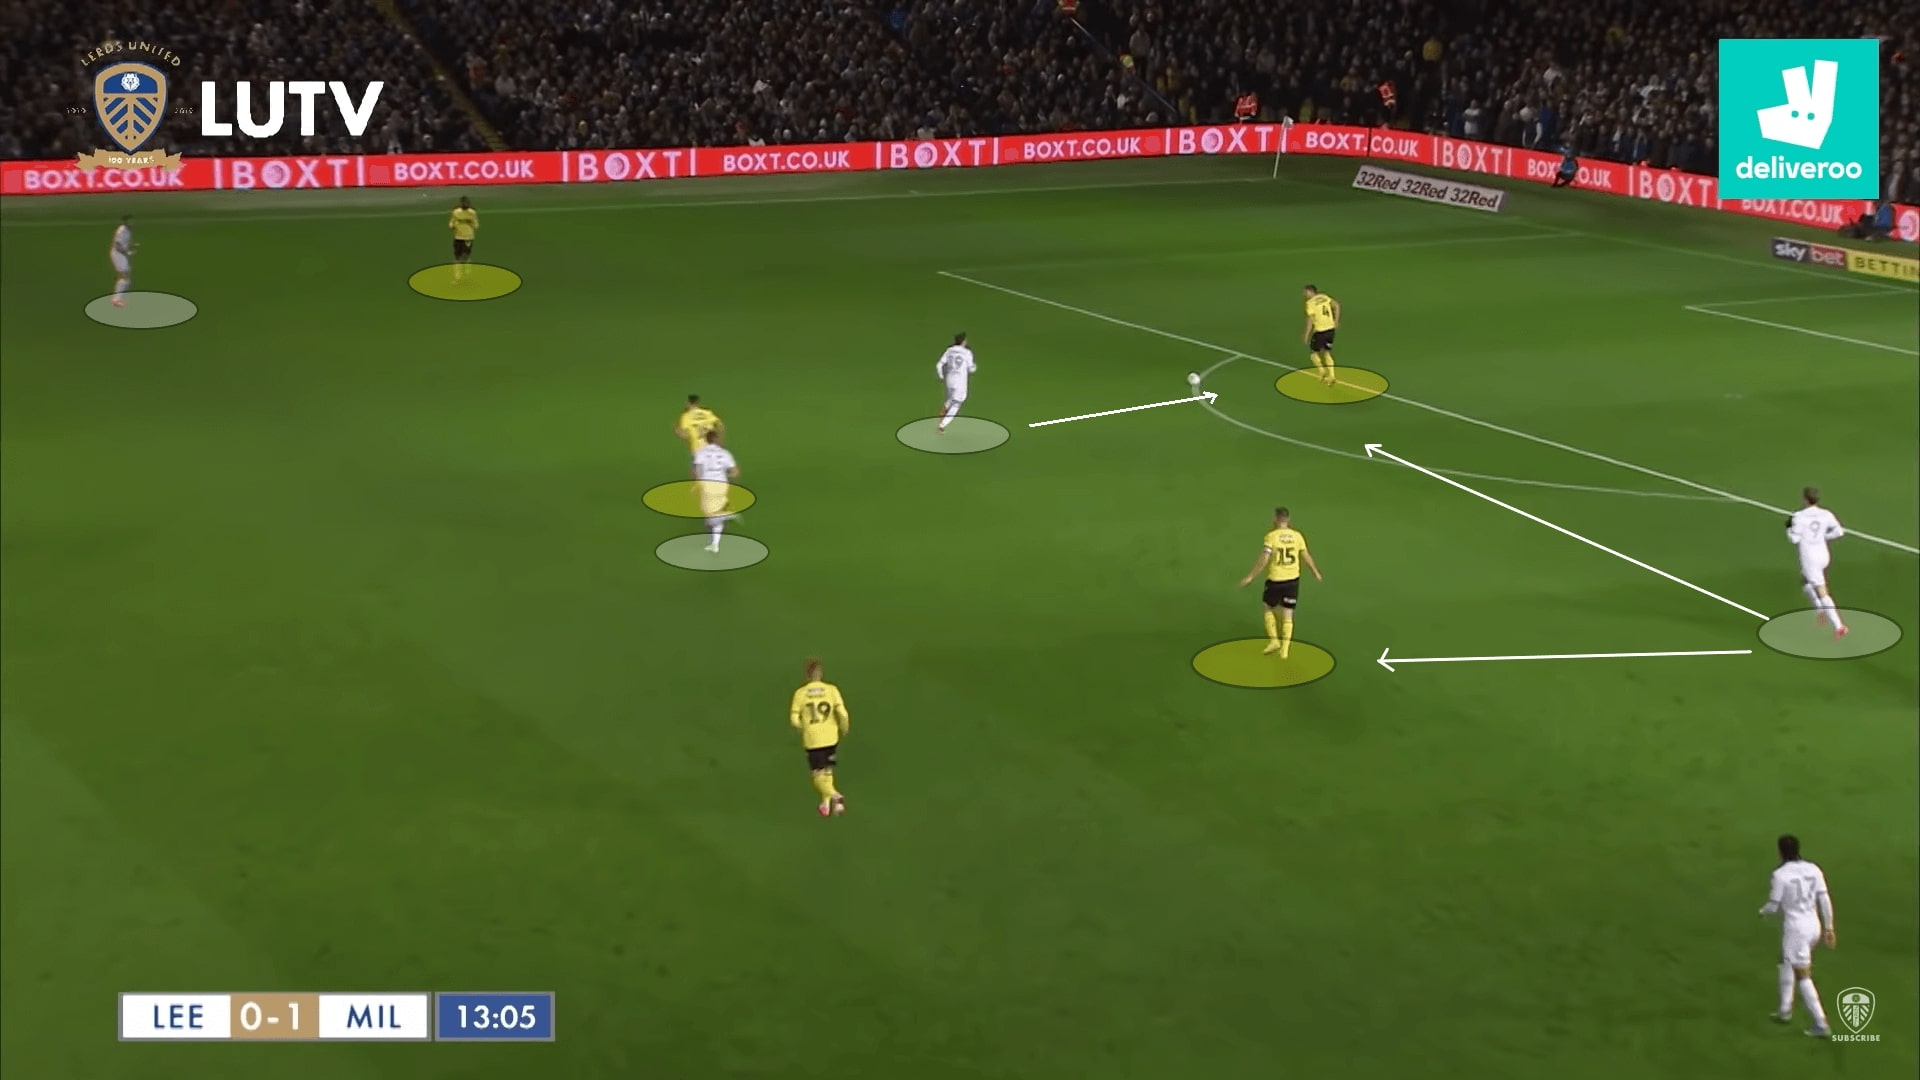 Leeds United 2019/20: their pressing and defence - scout report - tactical analysis tactics